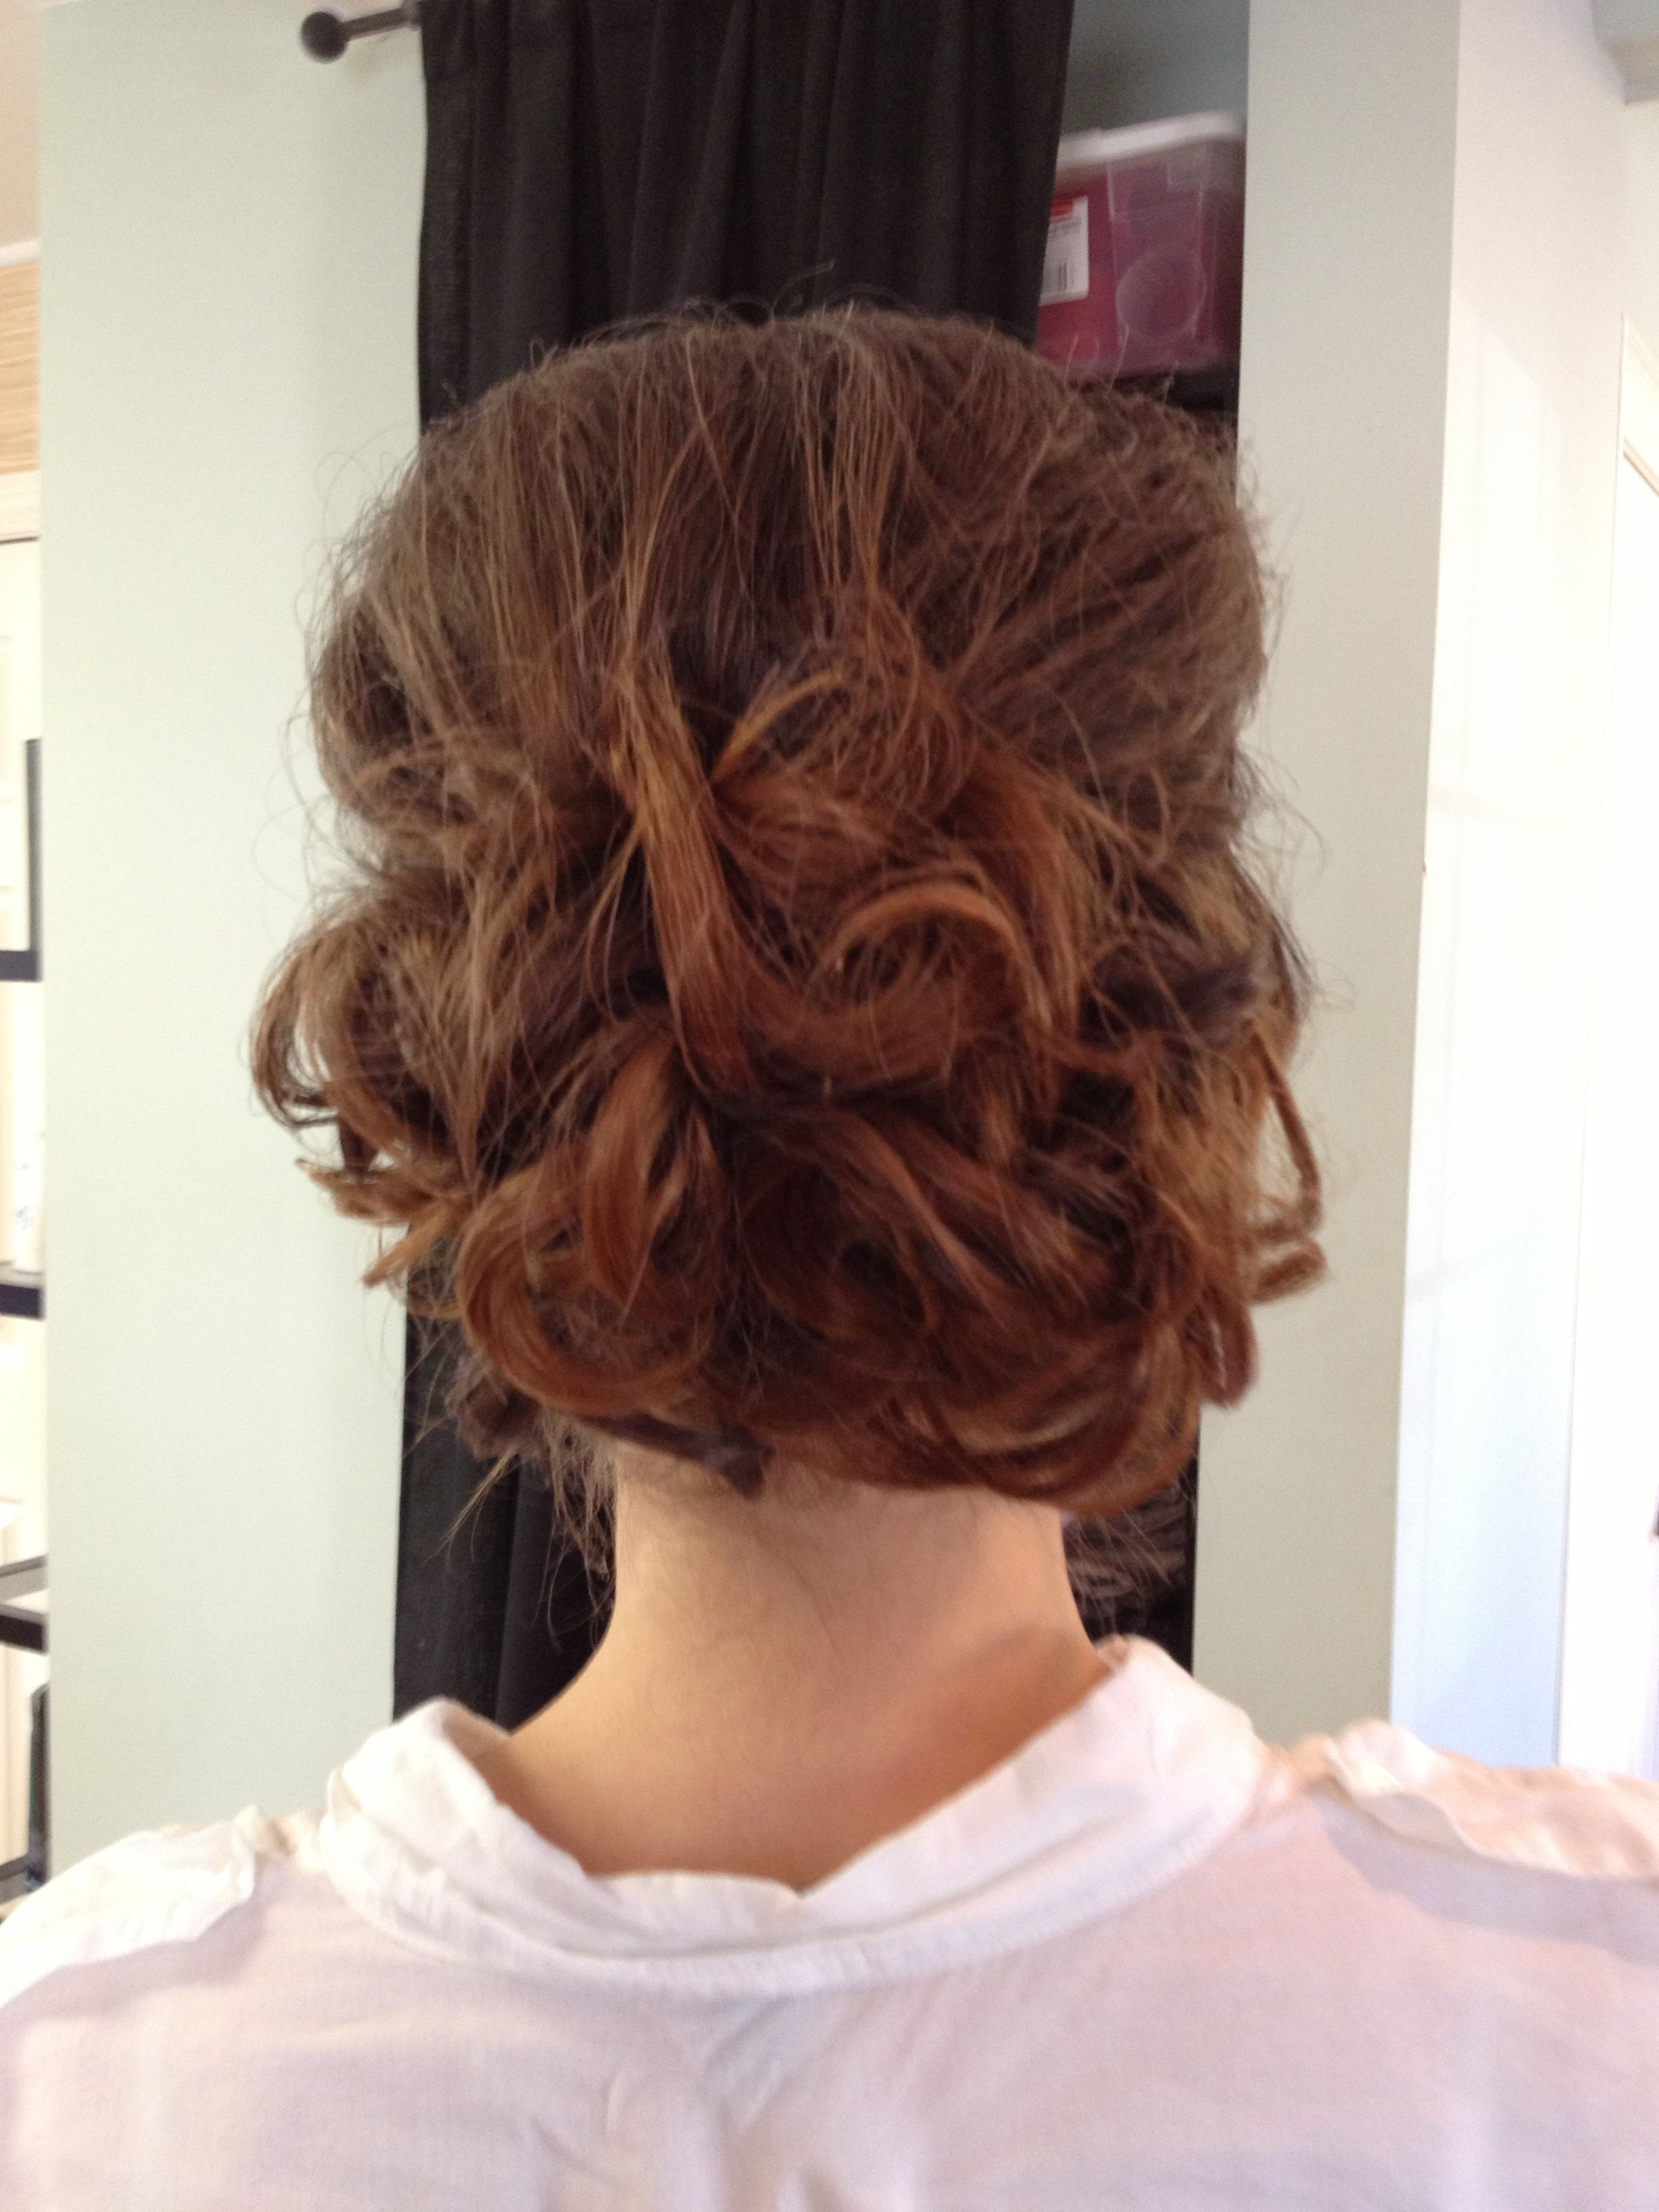 Low chignon with ombré colour Colour and style done by Elaine